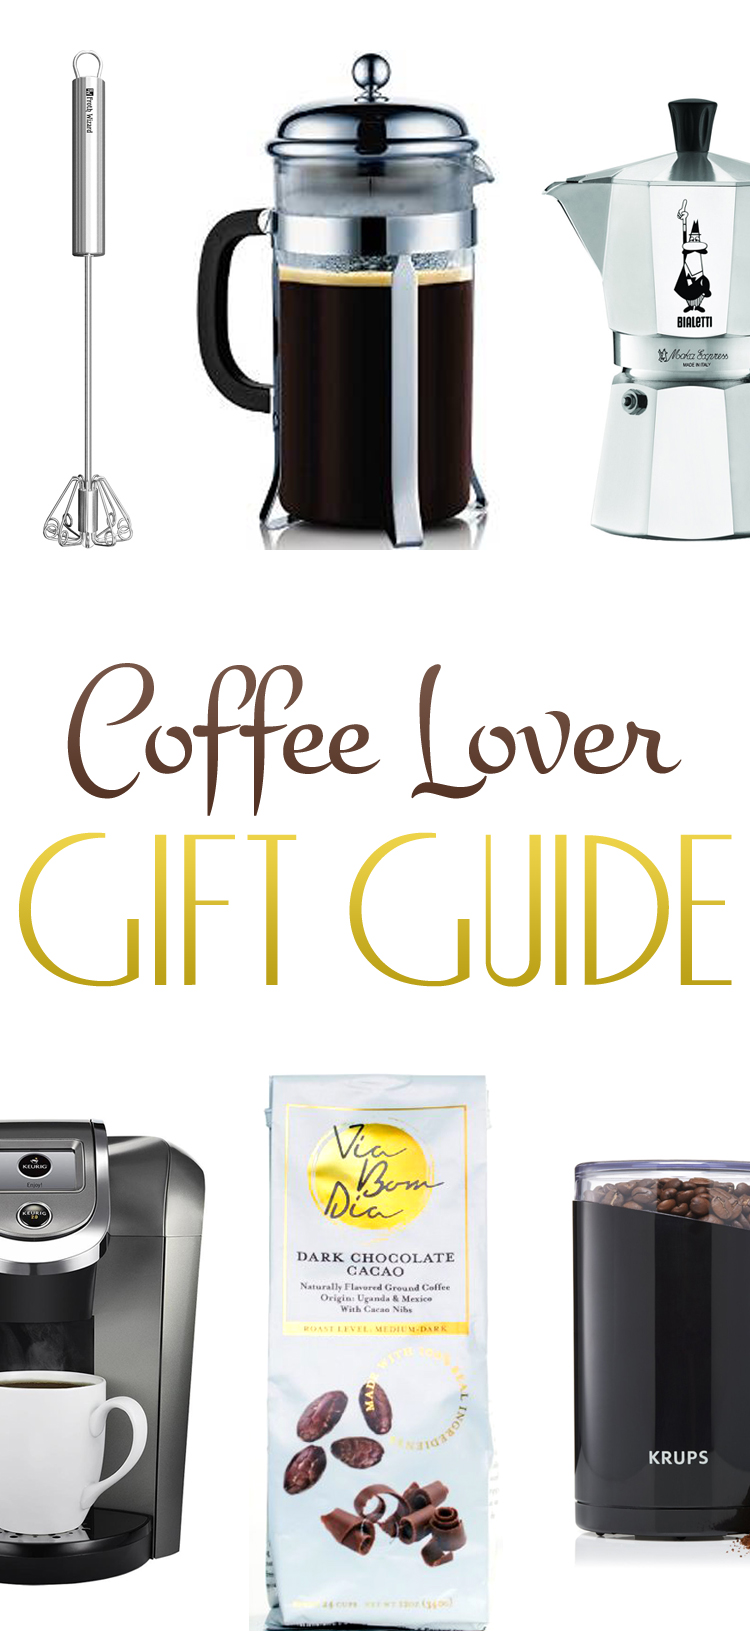 COFFEELOVER-0001